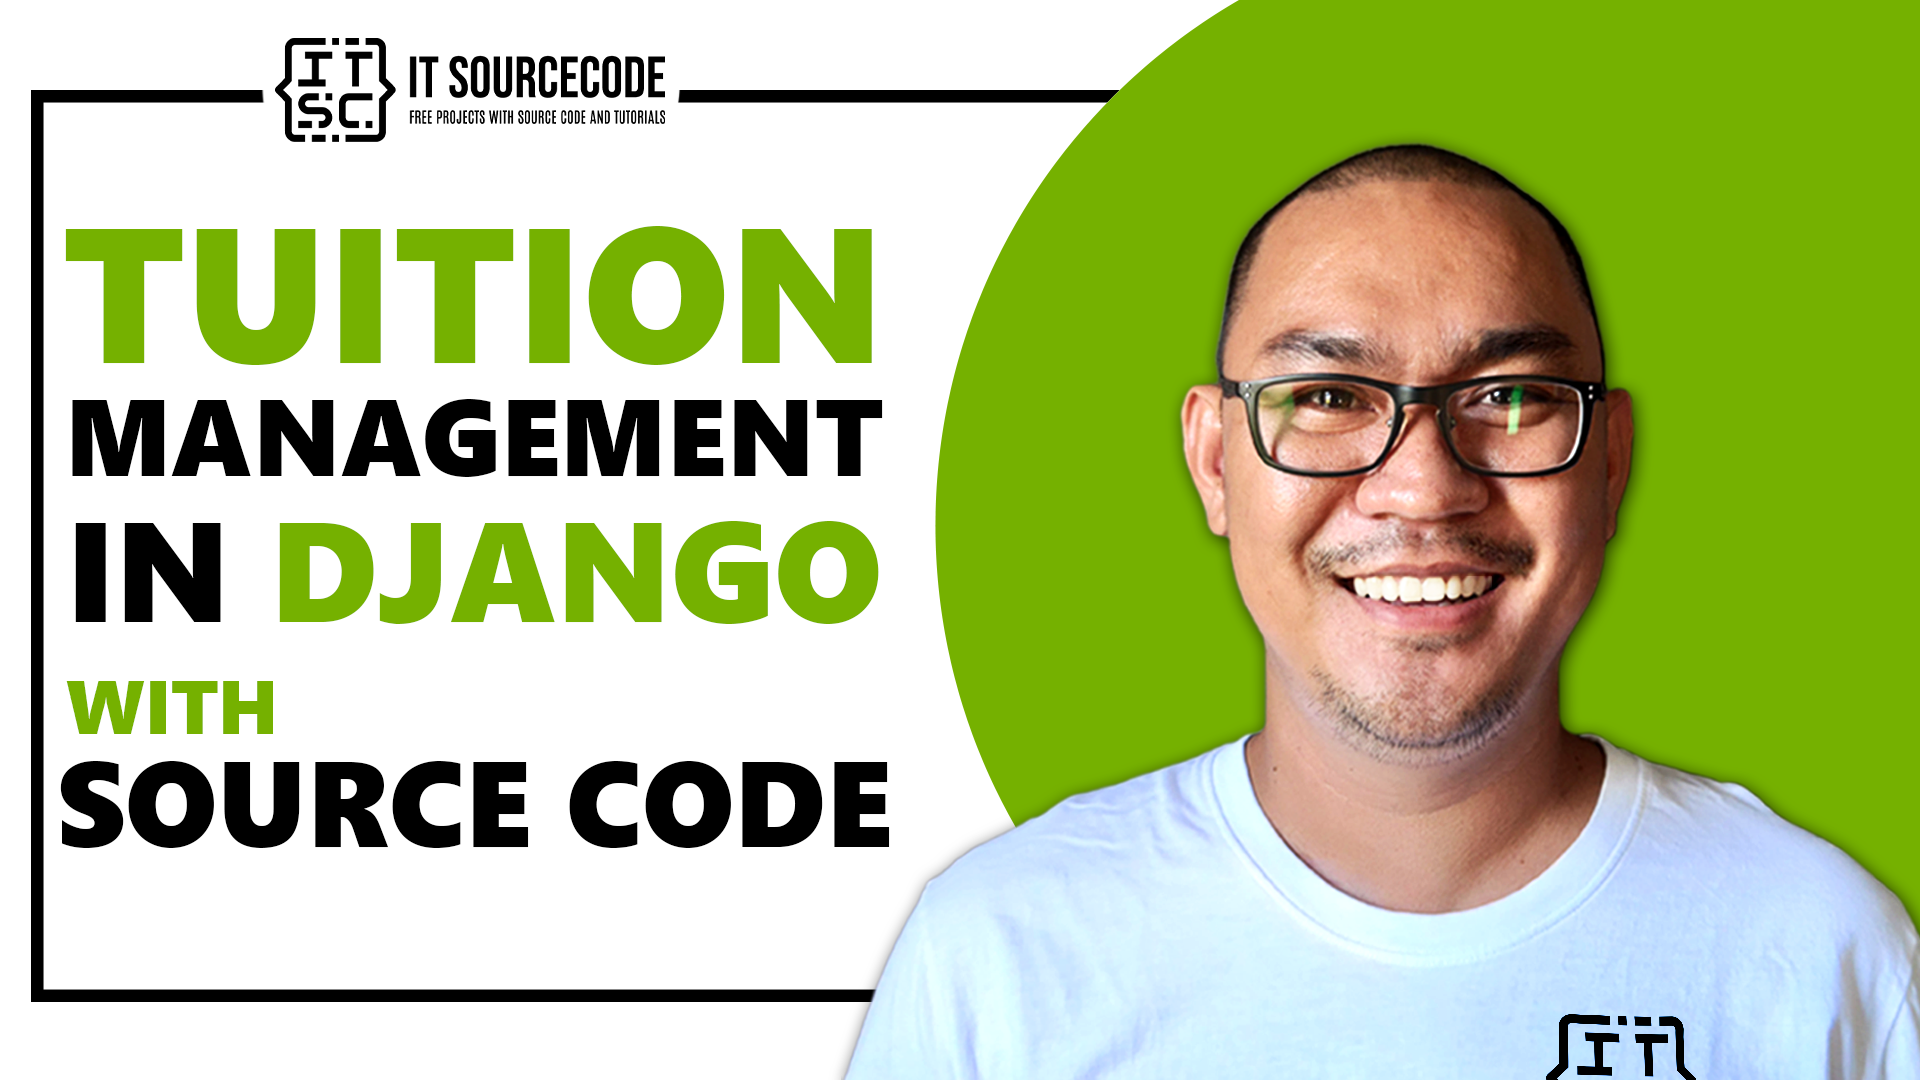 Tuition management system project in django